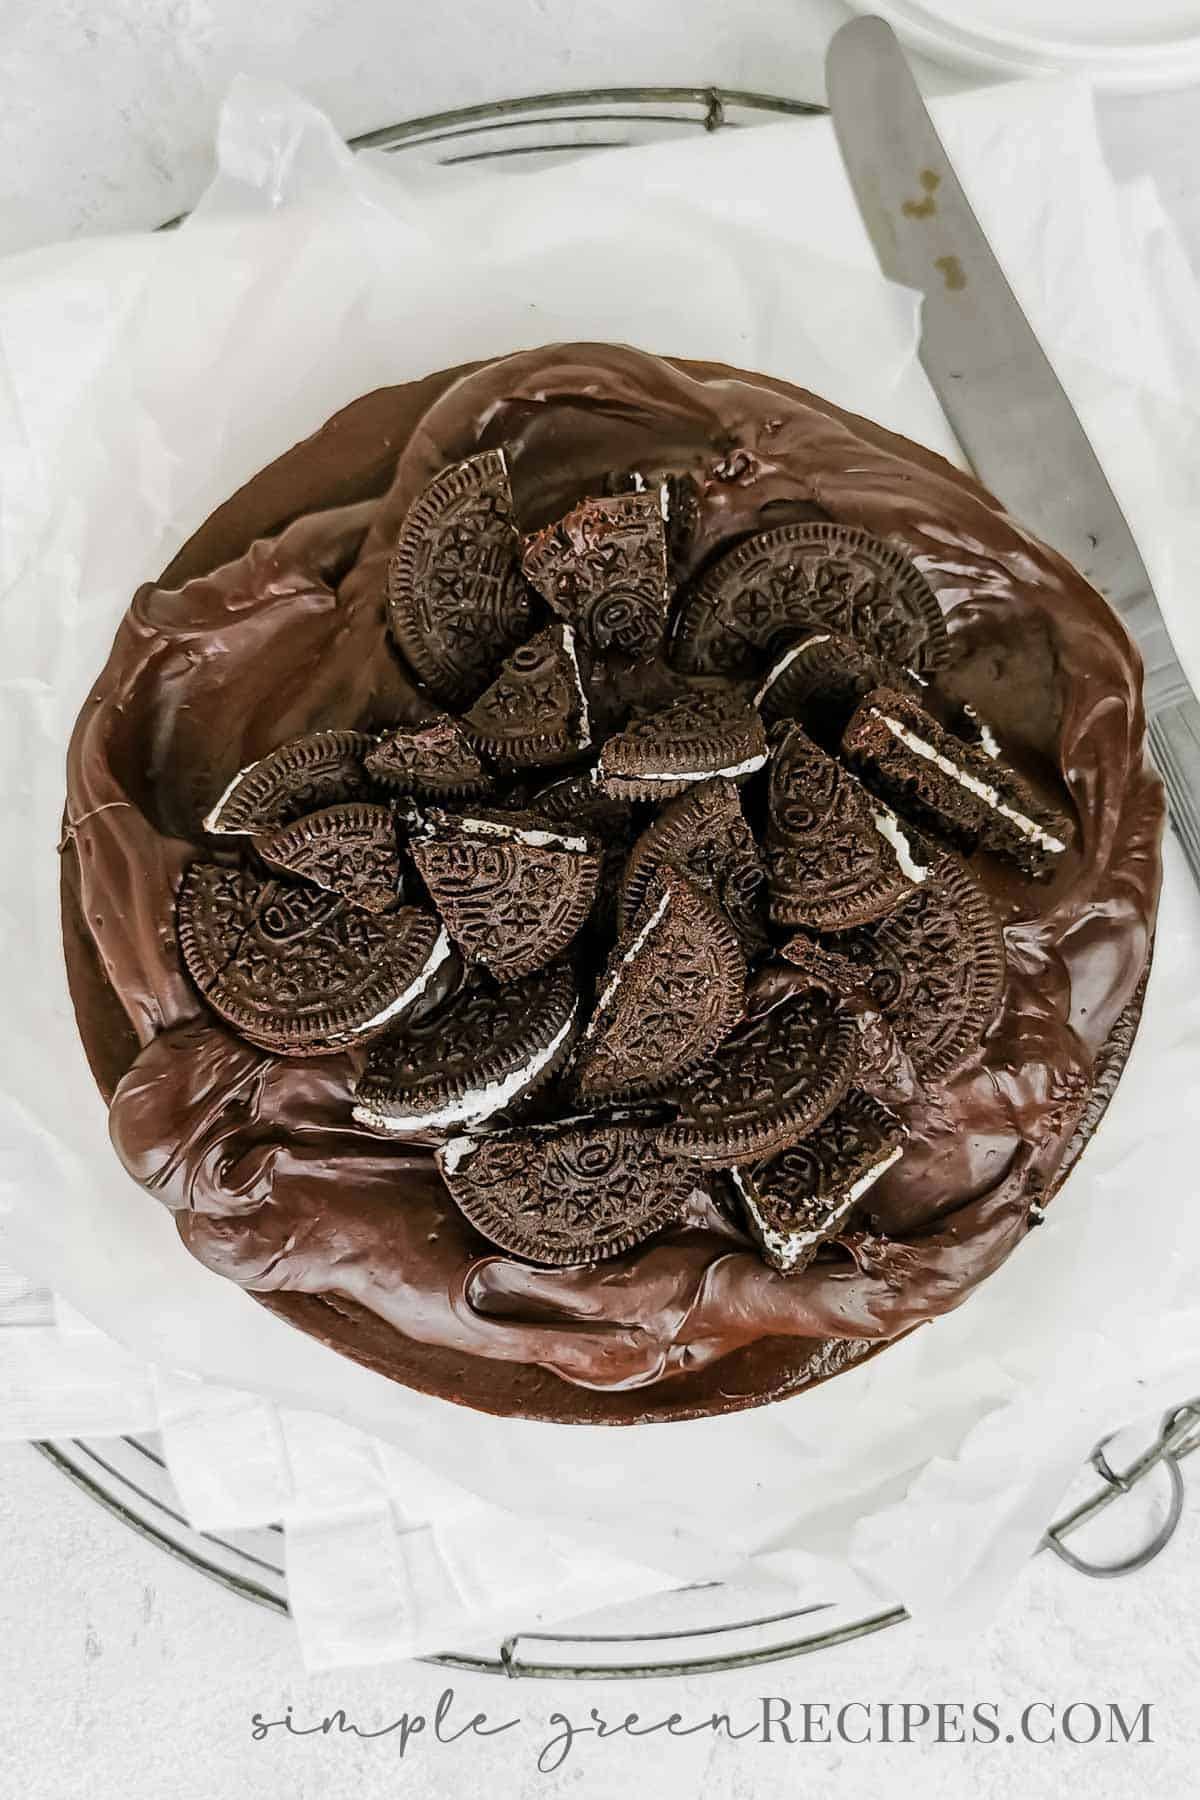 Uncut cheesecake made up of a cookie crust, chocolate cheesecake and topped with ganache and extra cookies.